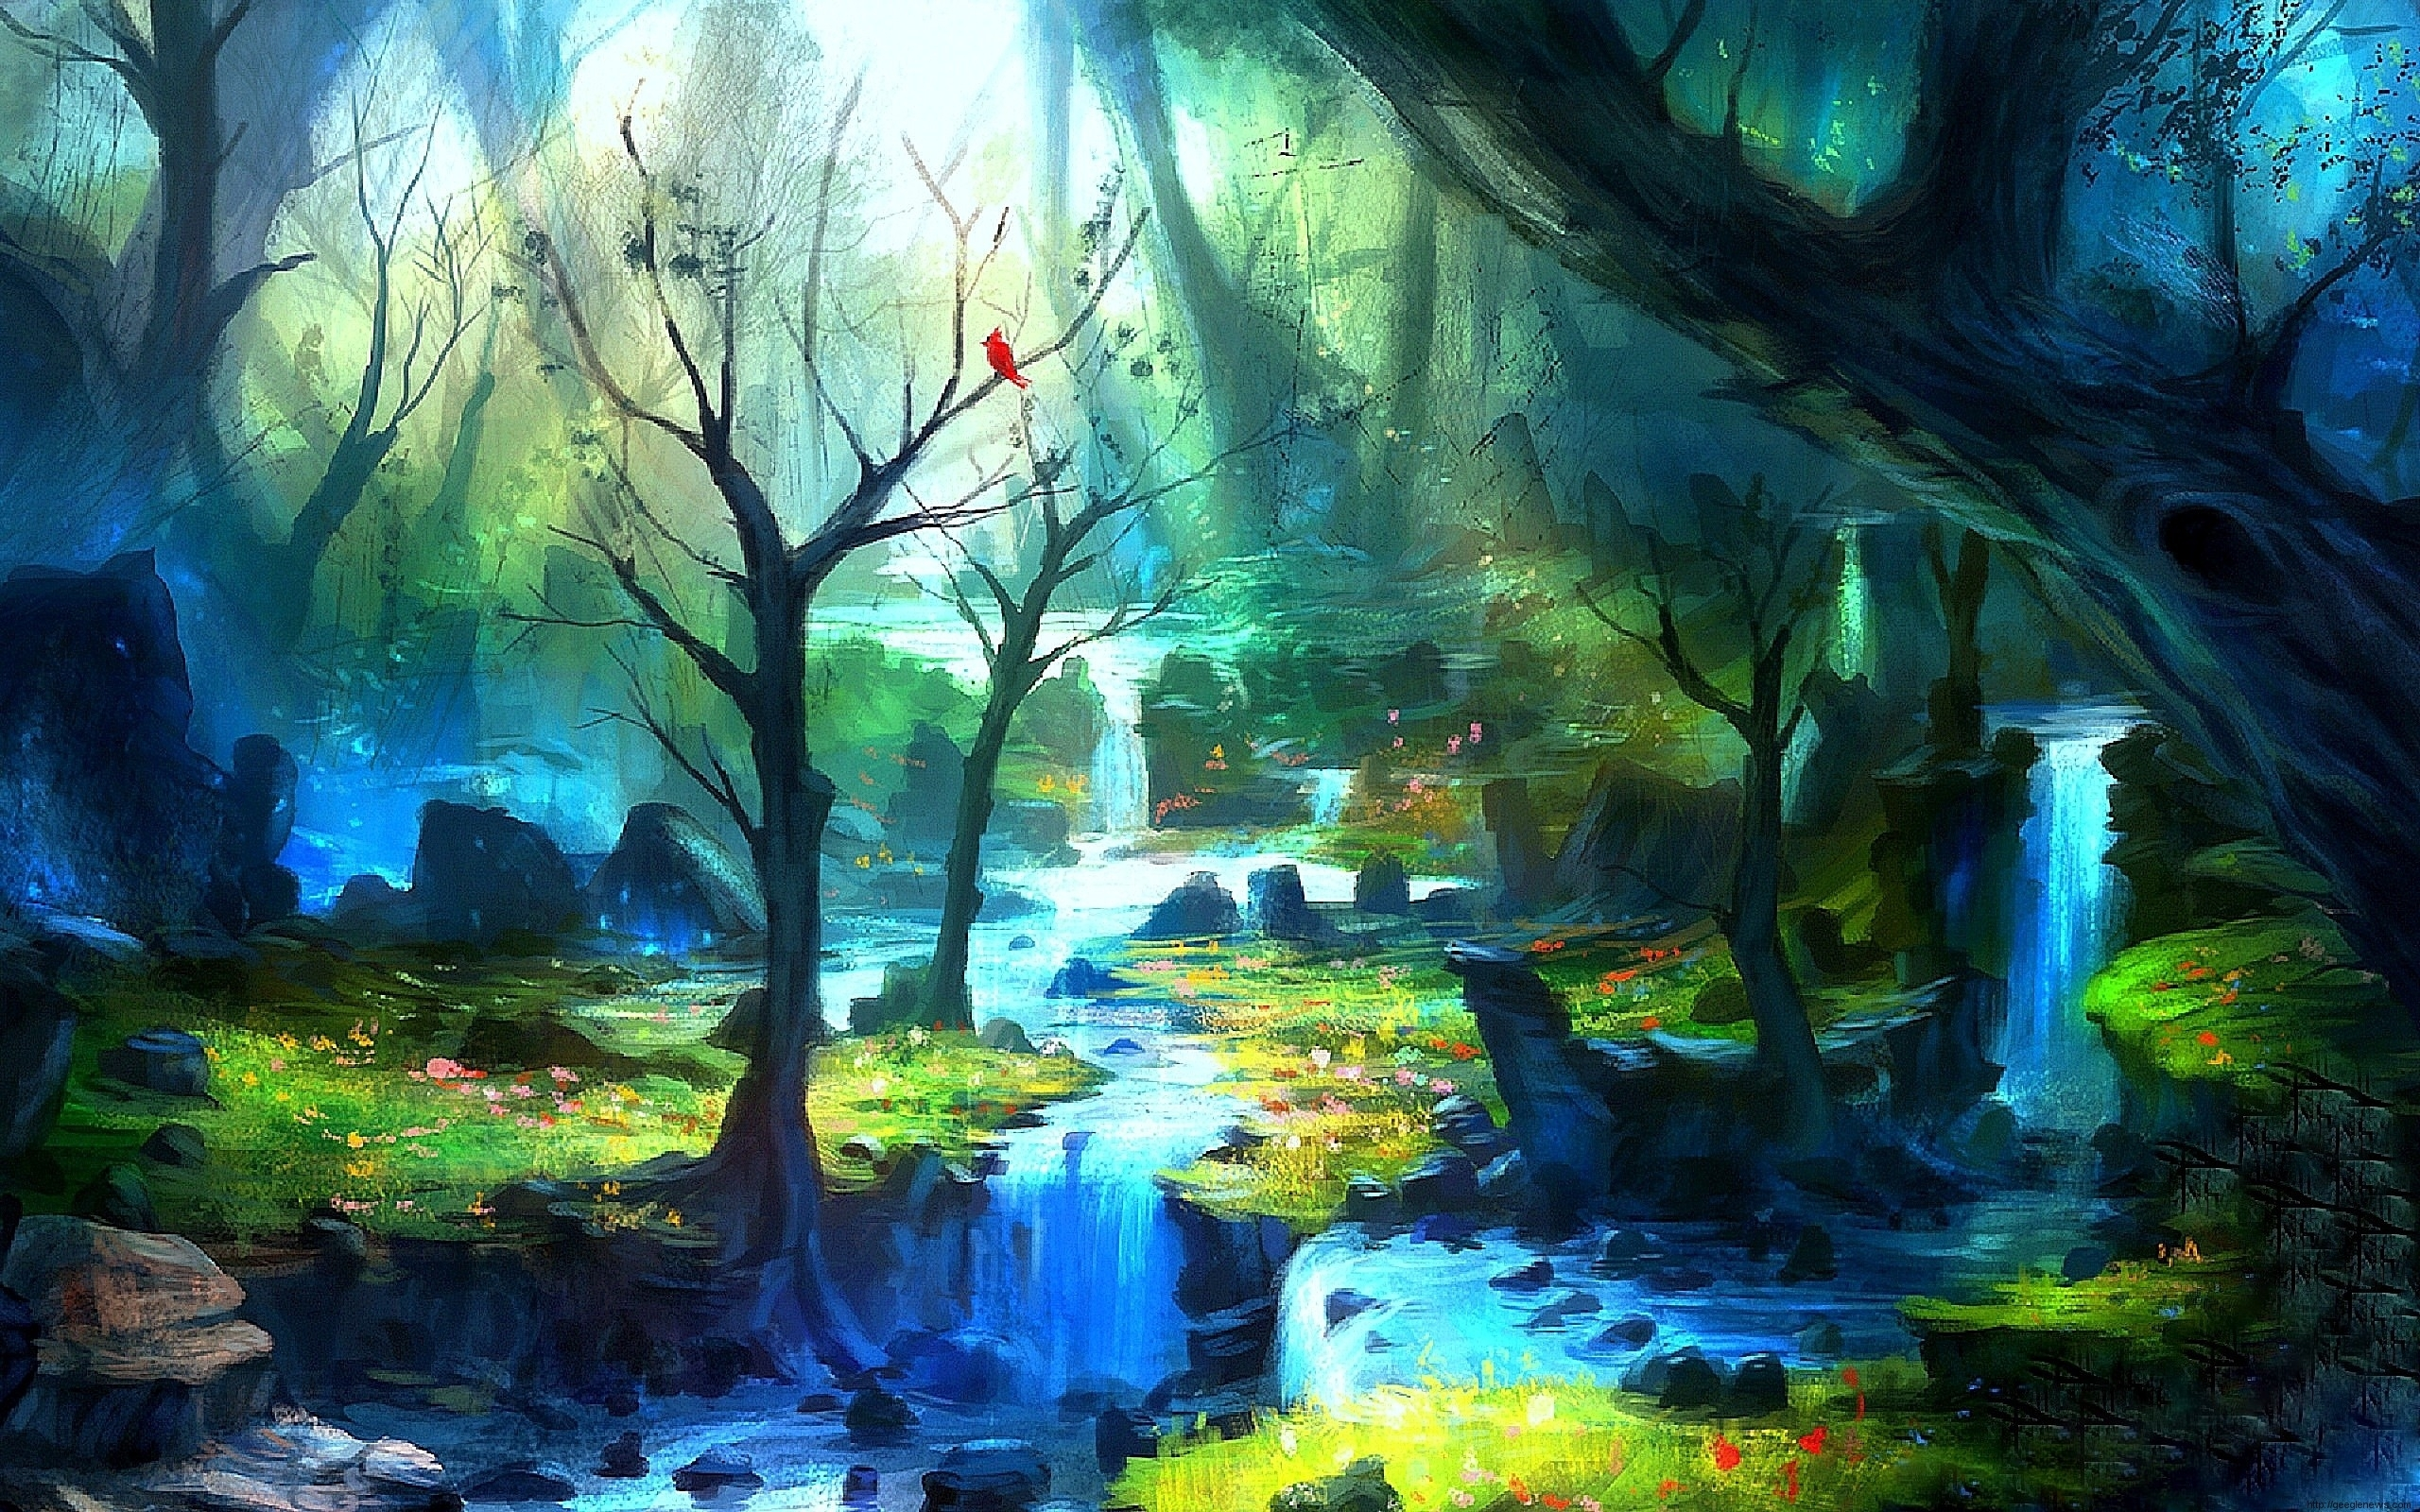 enchanted forest wallpapers hd - geegle news